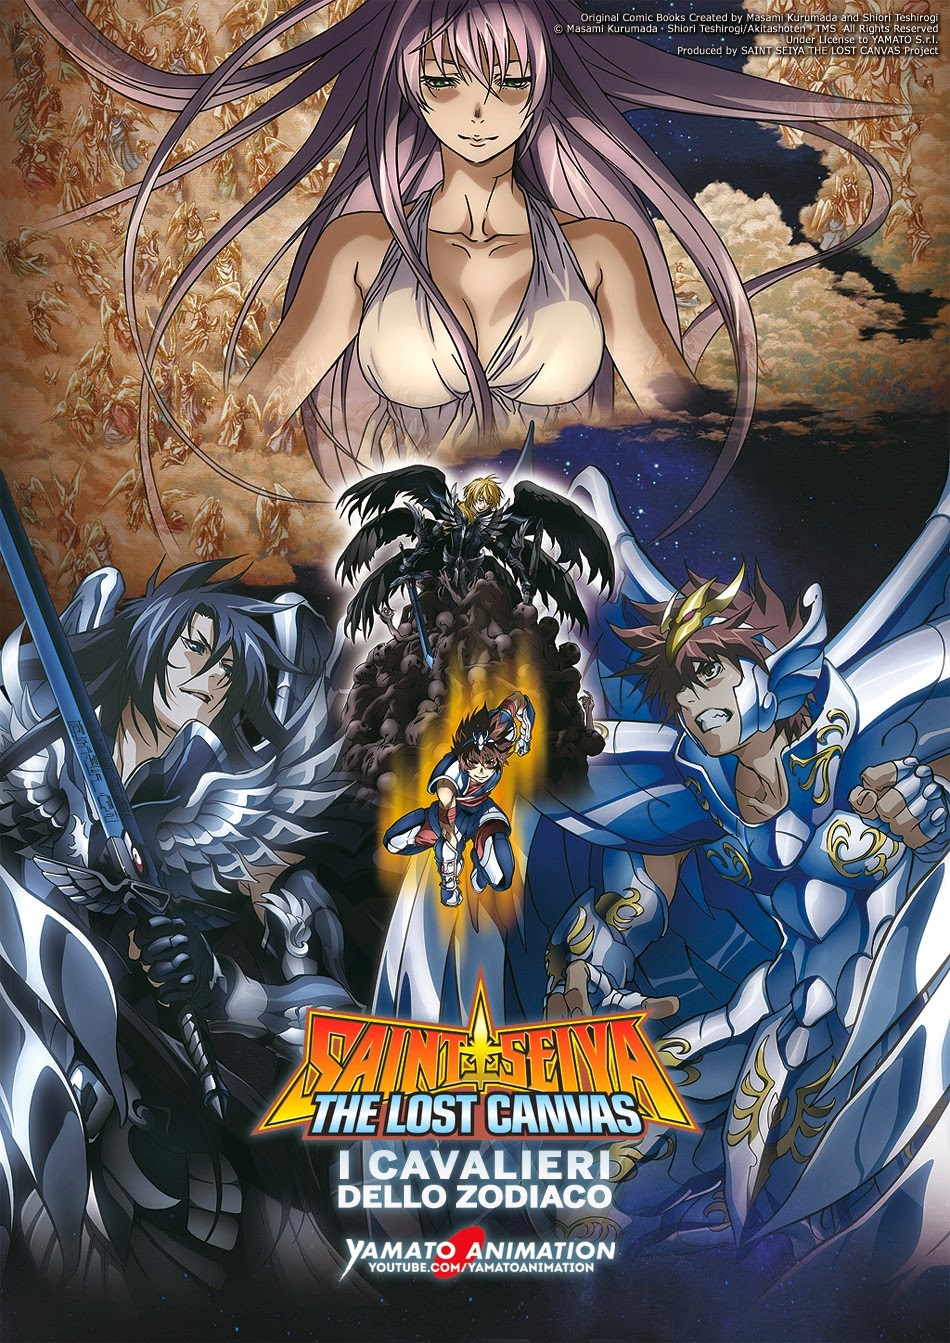 I CAVALIERI DELLO ZODIACO - SAINT SEIYA, STREAMING GRATUITO DI LOST CANVAS